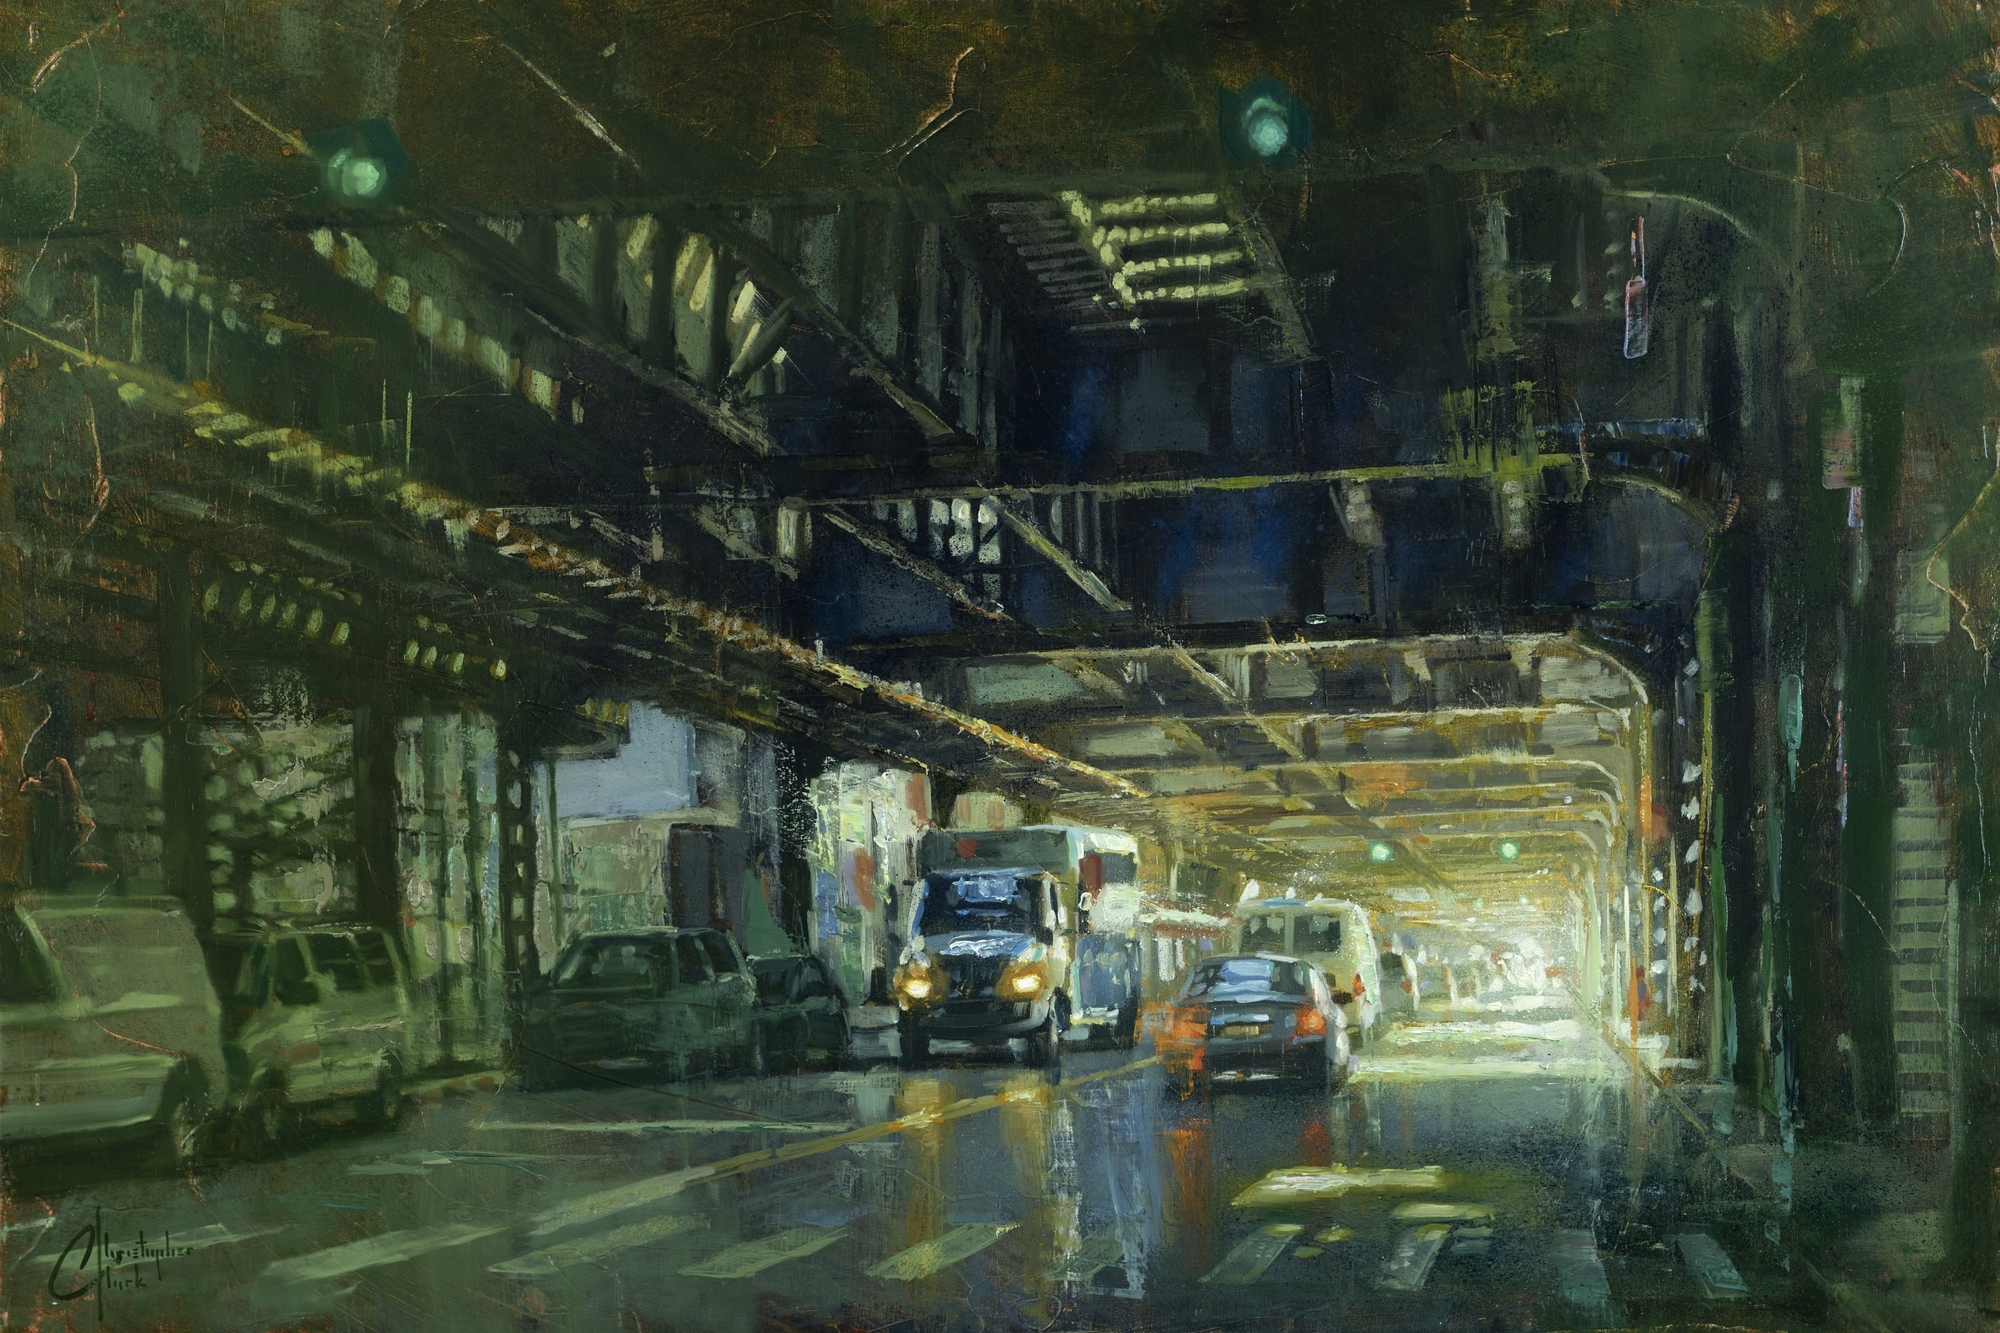 NYC - Under the Williamsburg Bridge by Christopher Clark